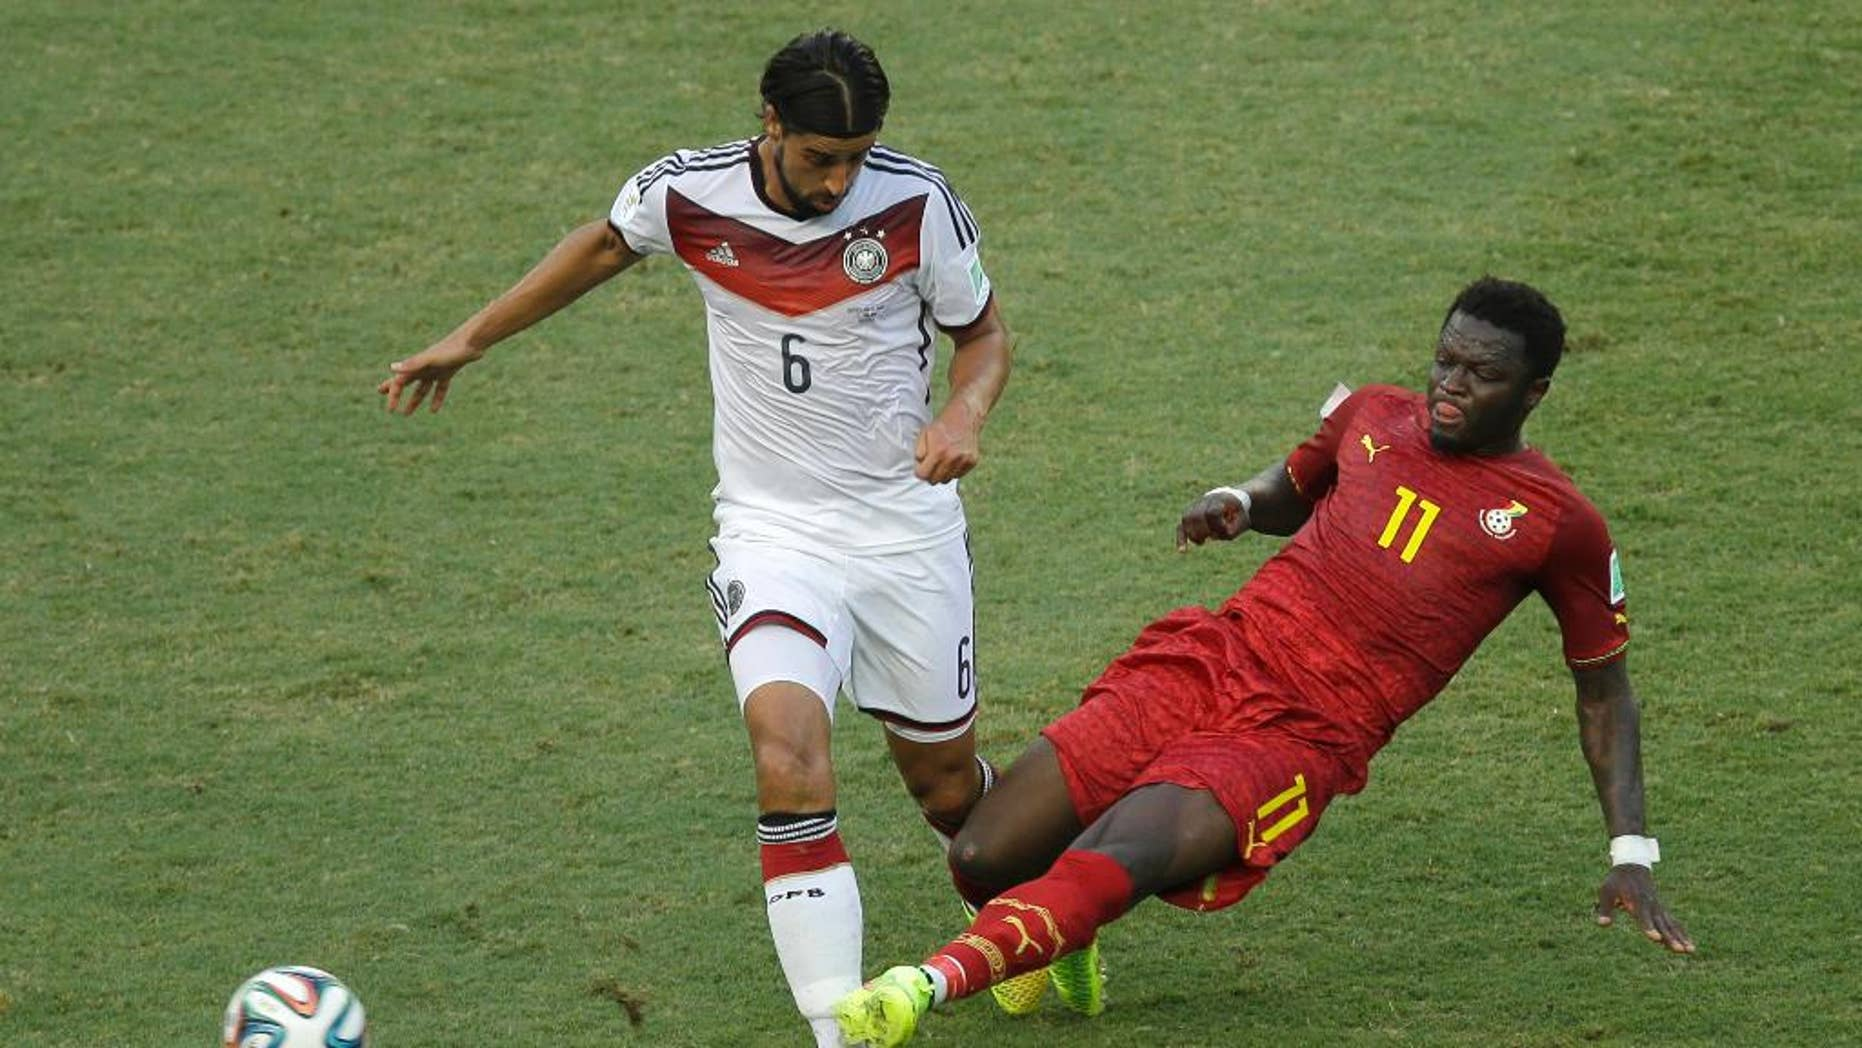 Germany's Sami Khedira, left, and Ghana's Sulley Muntari challenge for the ball during the group G World Cup soccer match between Germany and Ghana at the Arena Castelao in Fortaleza, Brazil, Saturday, June 21, 2014. (AP Photo/Themba Hadebe)